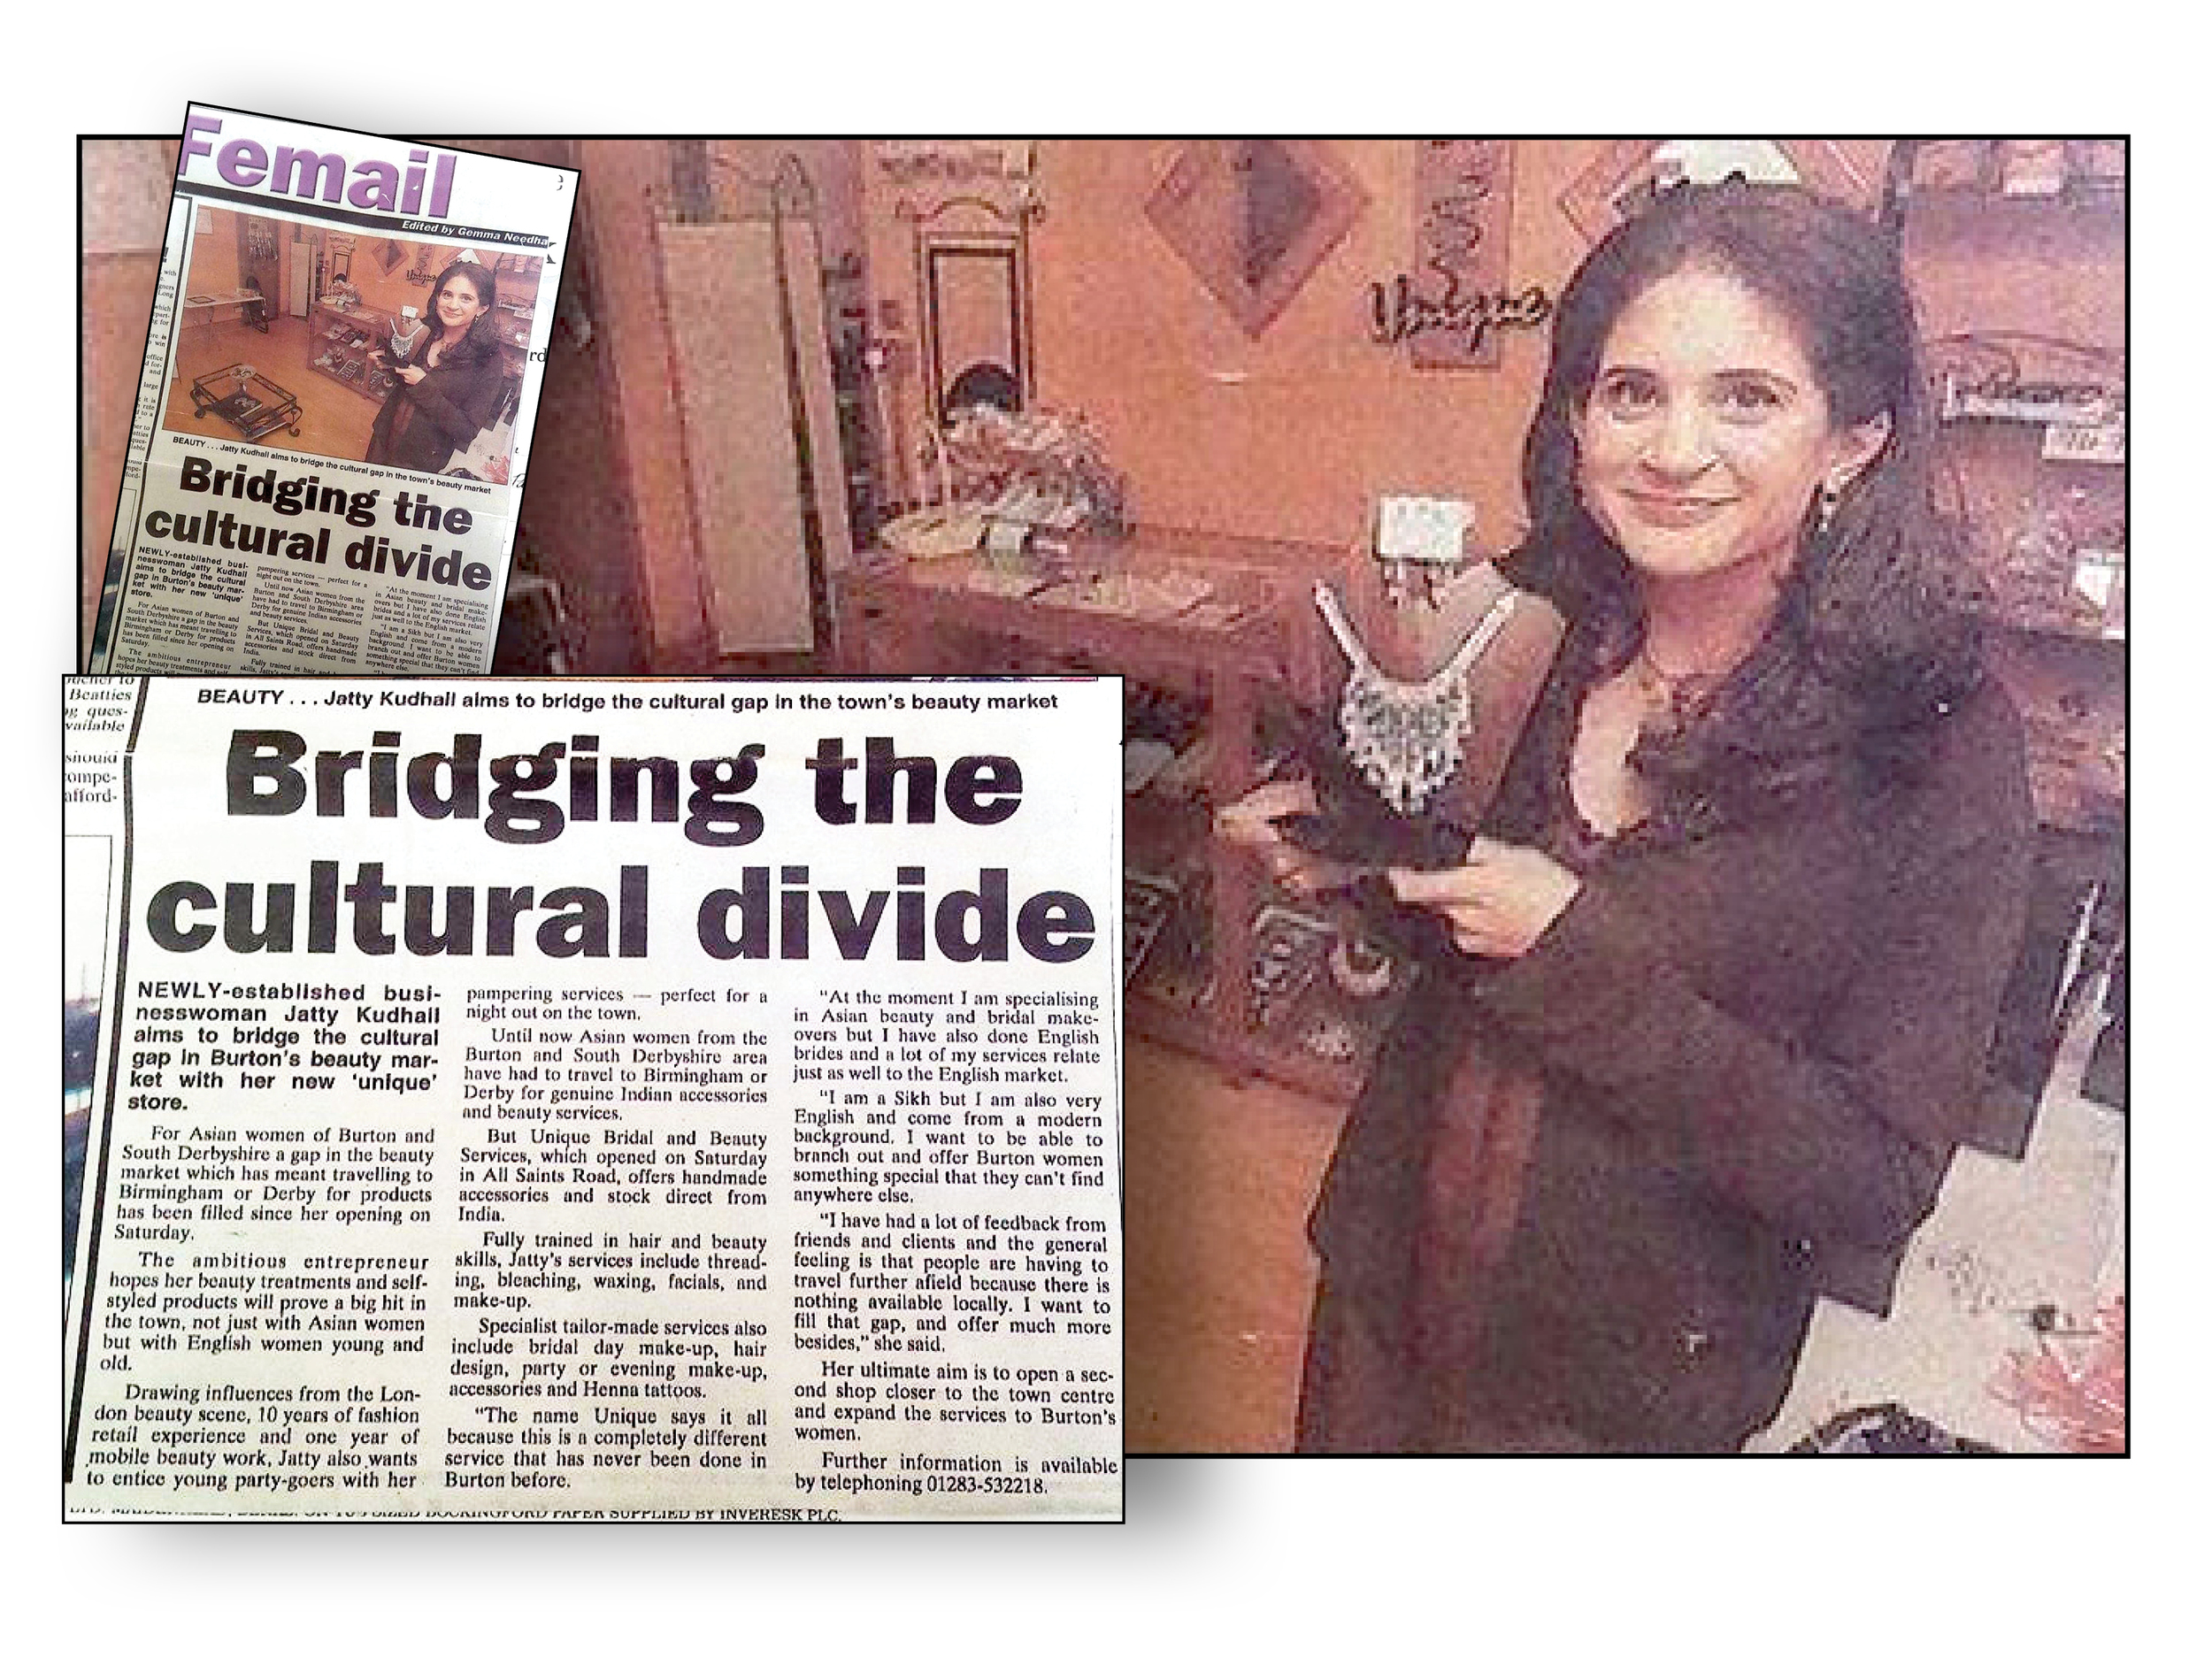 Bridging the cultural divide article - Edited by Gemma Needham from Burton Mail - 2001. Read about Jatty Kudhail and how she started her small business. It touches on her dreams and career aspirations and how she's made her own mark within the beauty market in Burton.